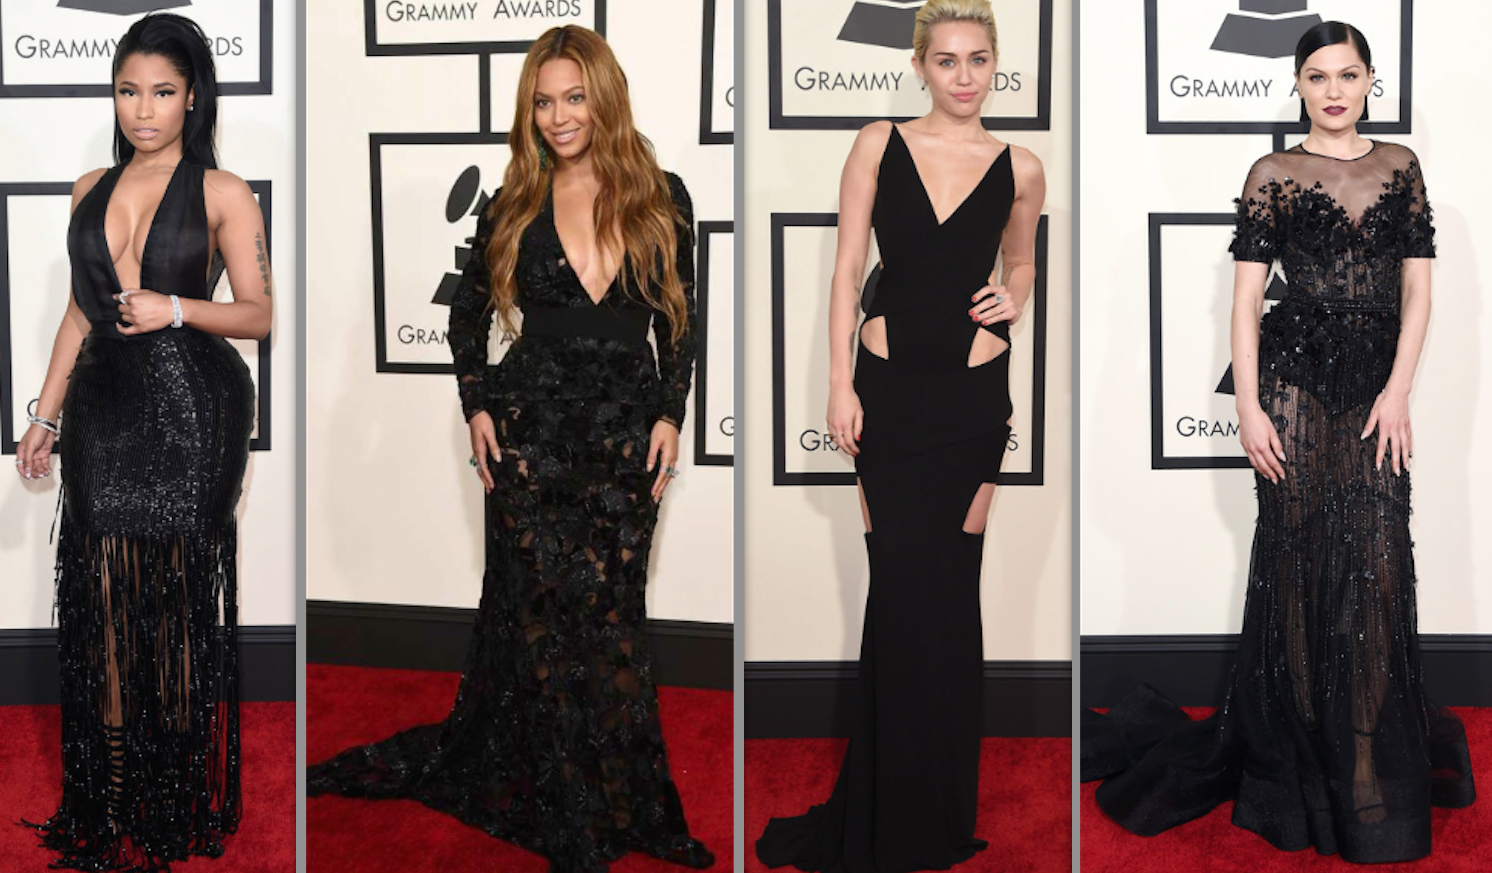 GRAMMYS, GRAMMY AWARDS, BEST DRESSED, CELEB, CELEB STYLE